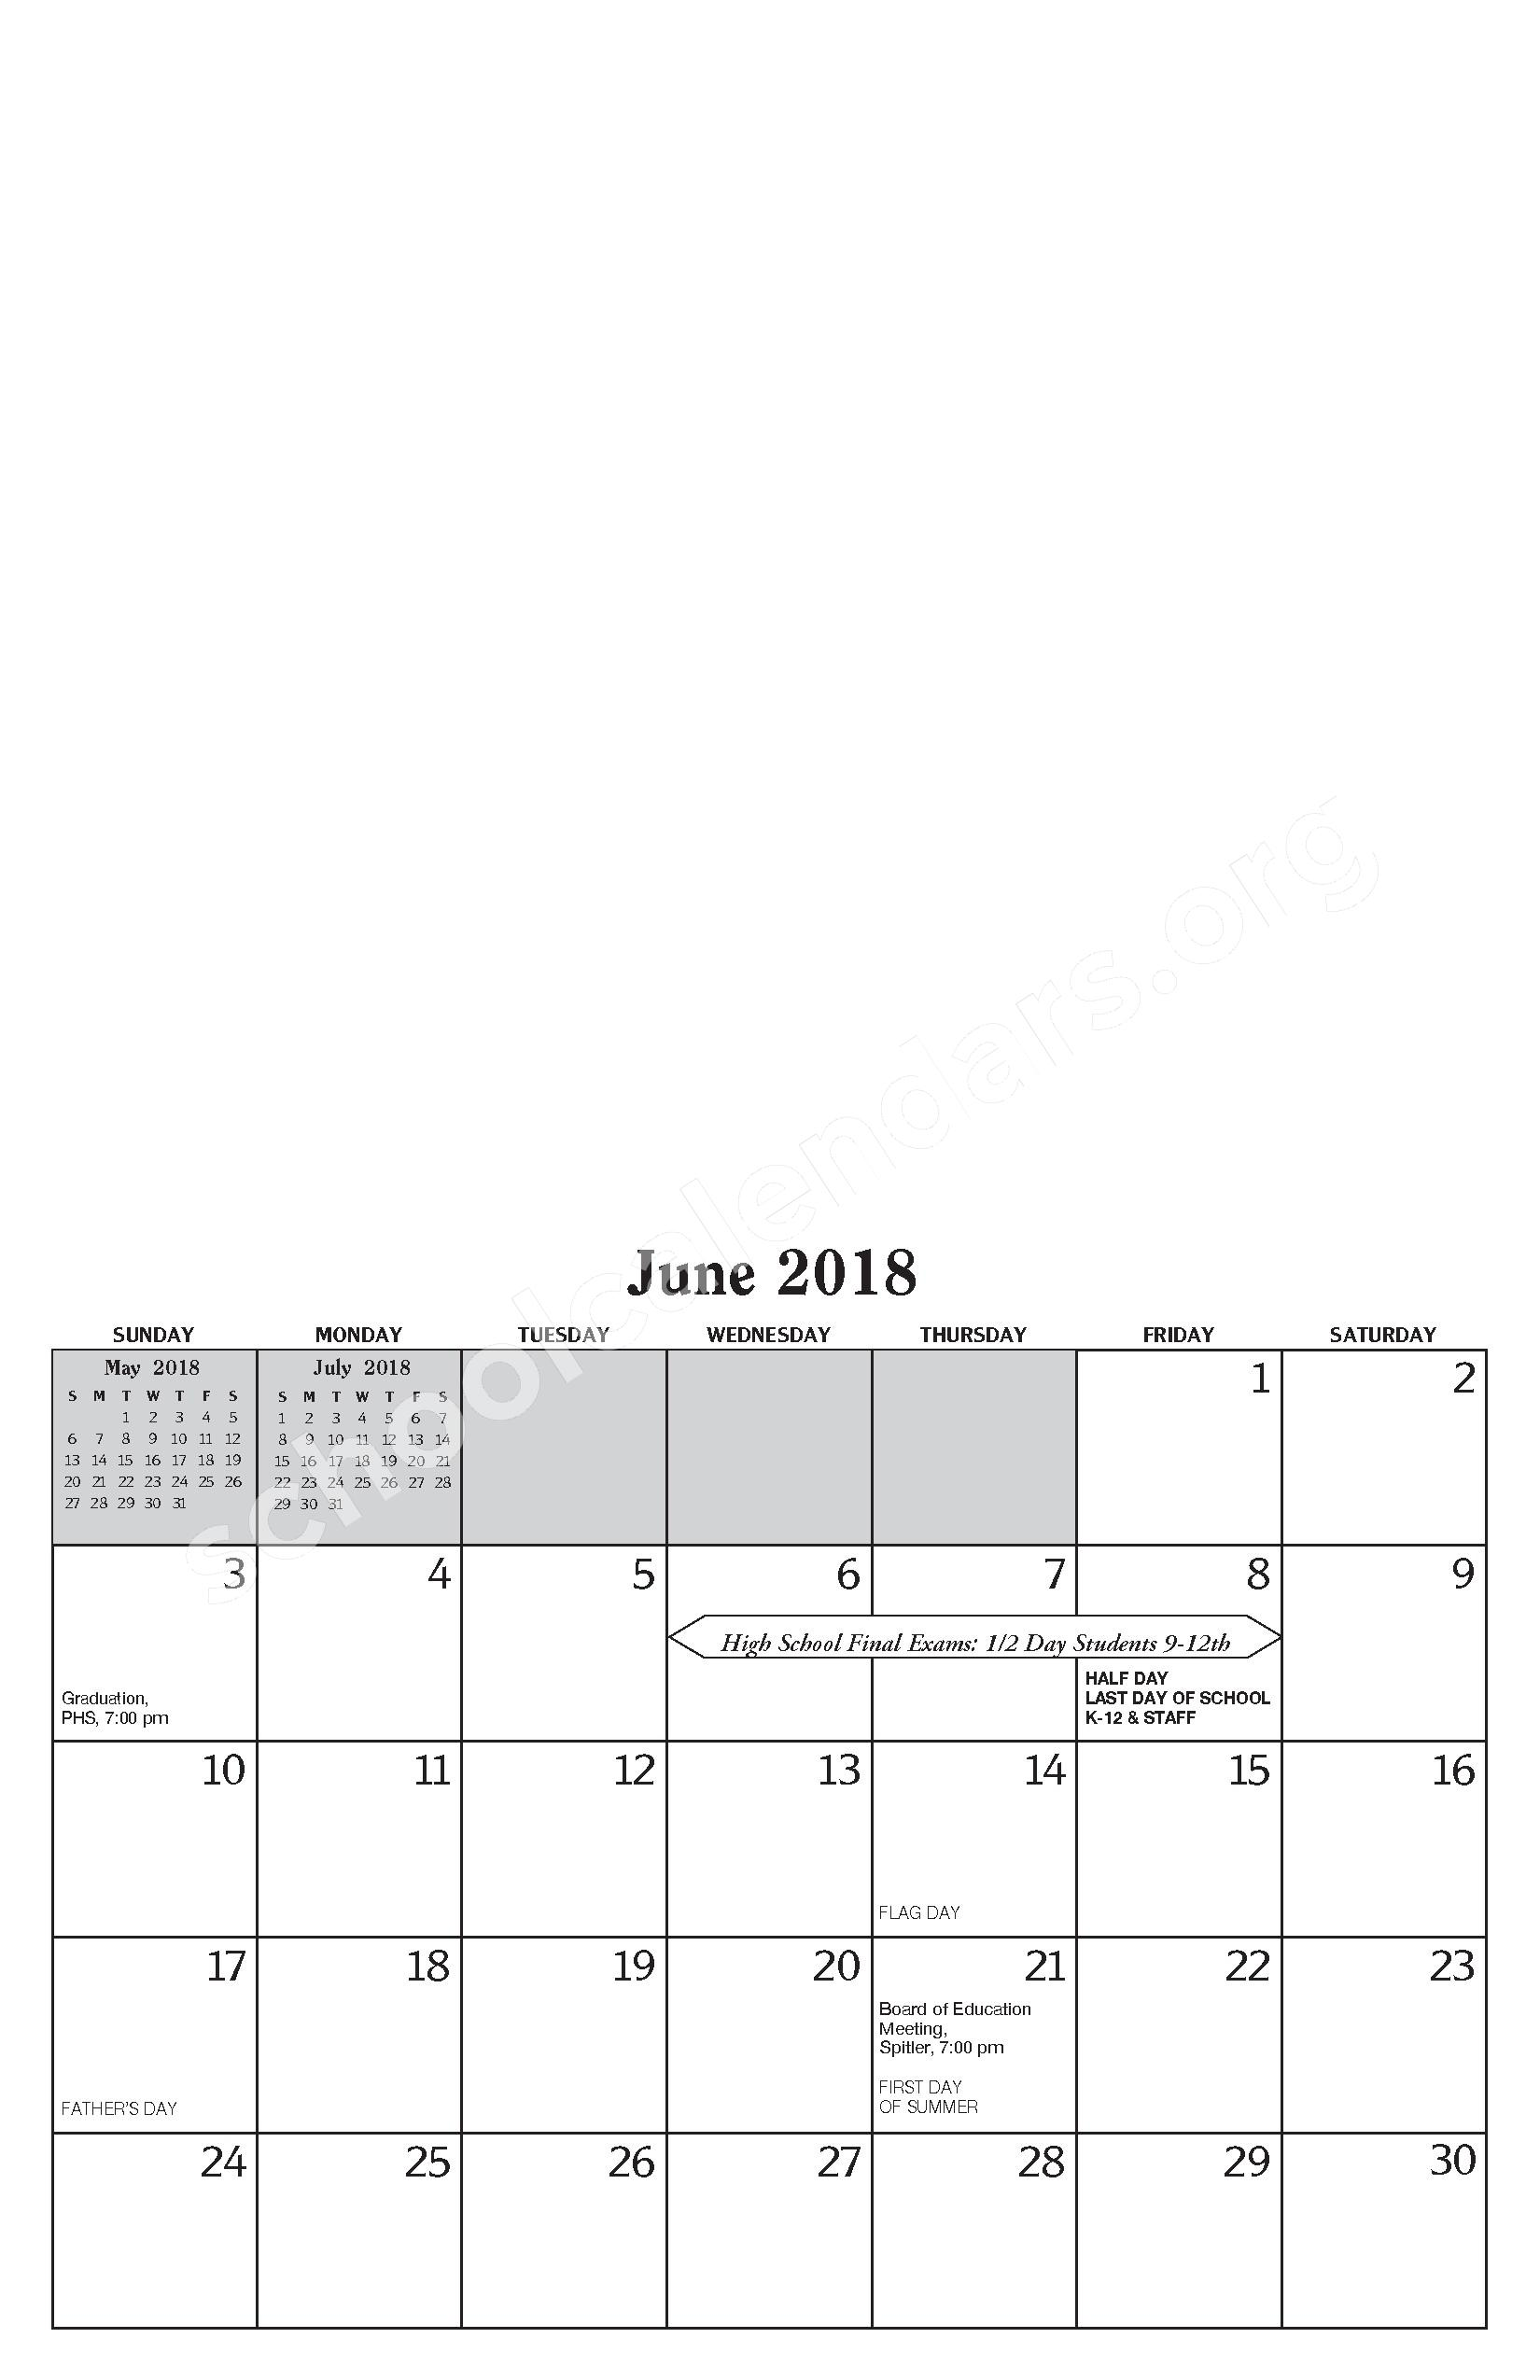 Annual Report & Calendar – Public Schools of Petoskey – page 23